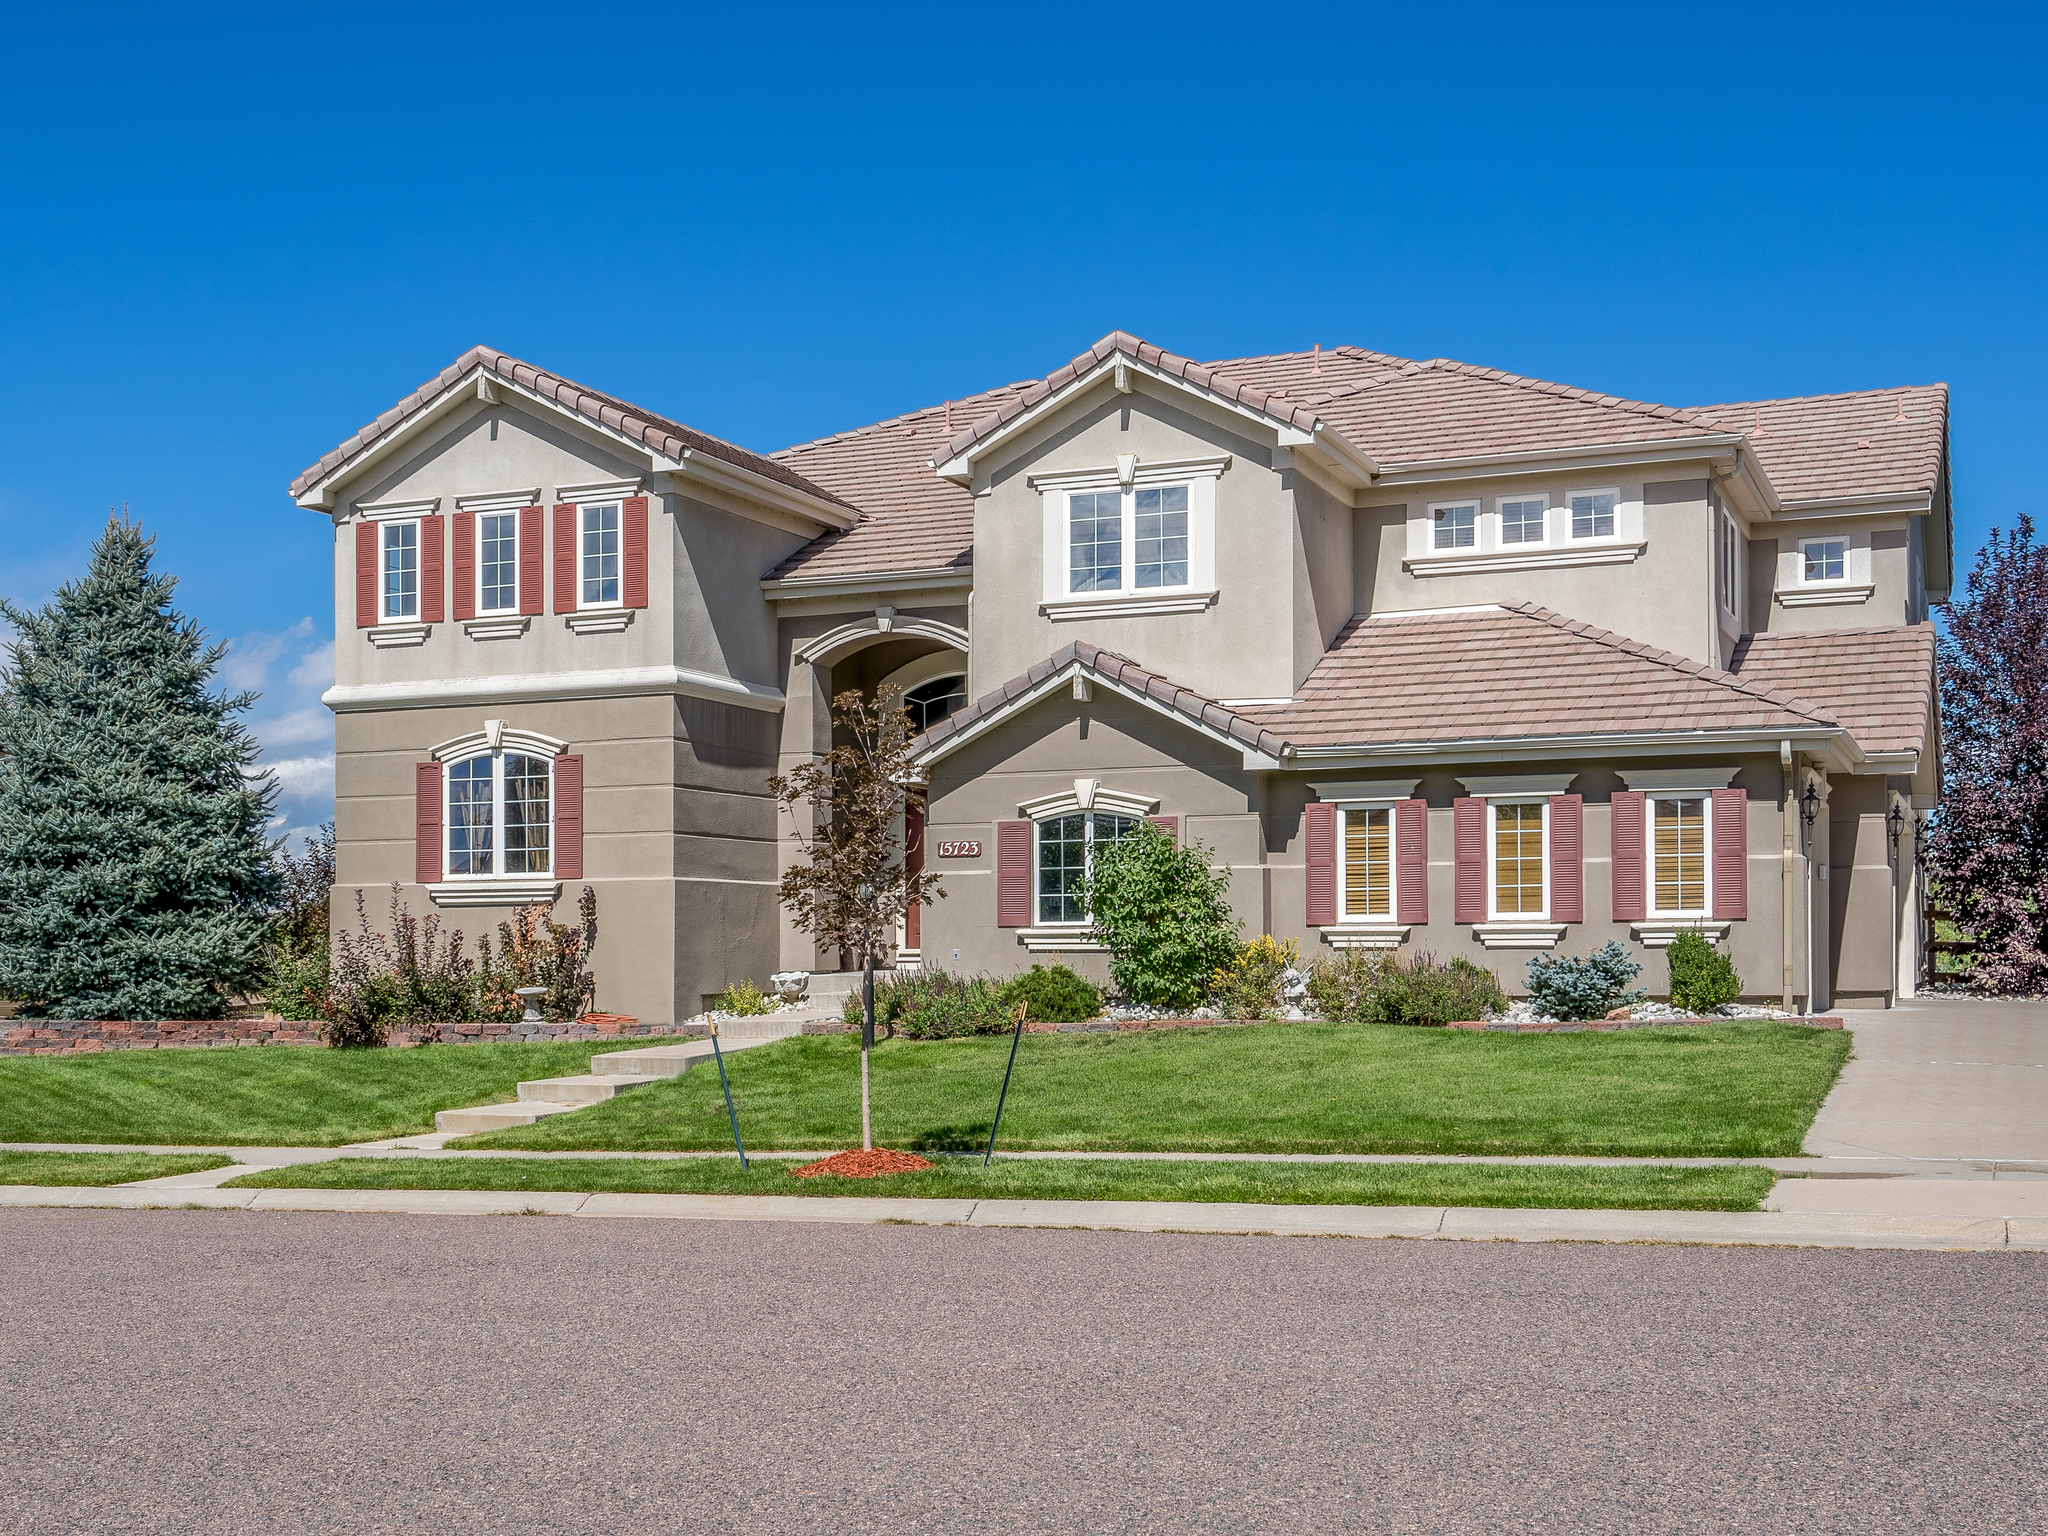 Single Family Home for Sale at 15723 E Orchard Pl Centennial, Colorado, 80016 United States